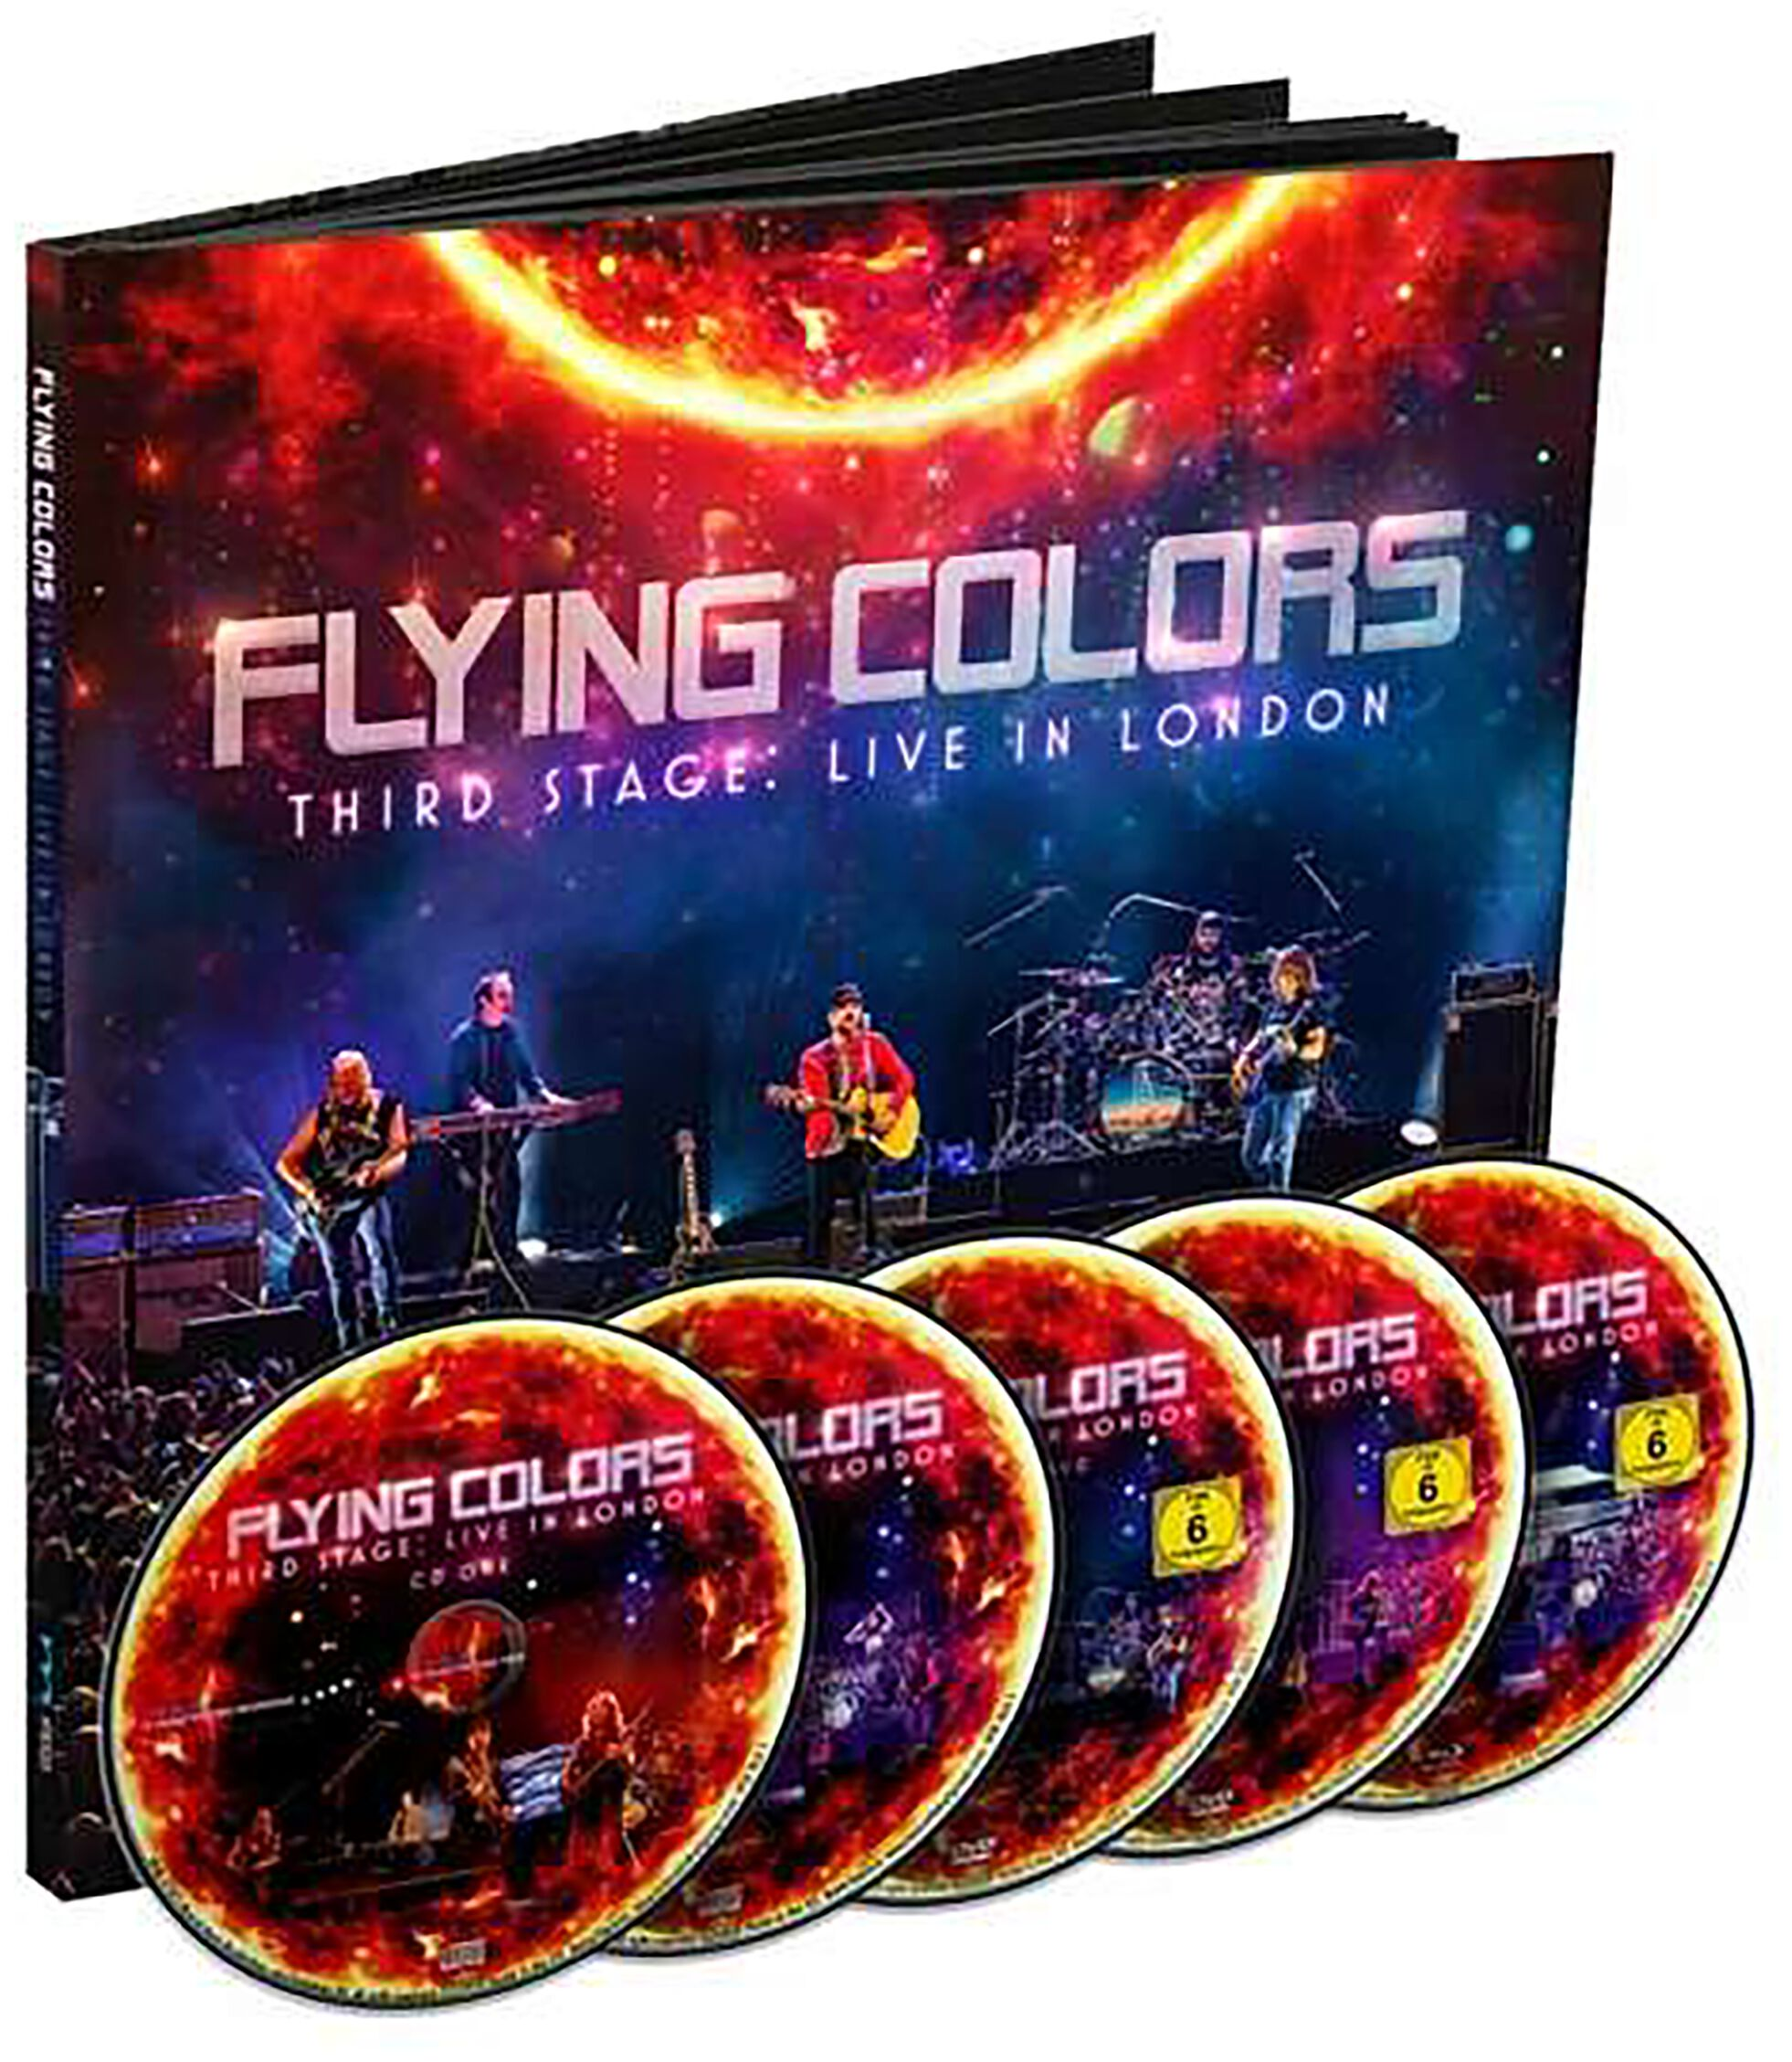 Image of Flying Colors Third stage: Live in London 2-CD & 2-DVD & Blu-ray Standard